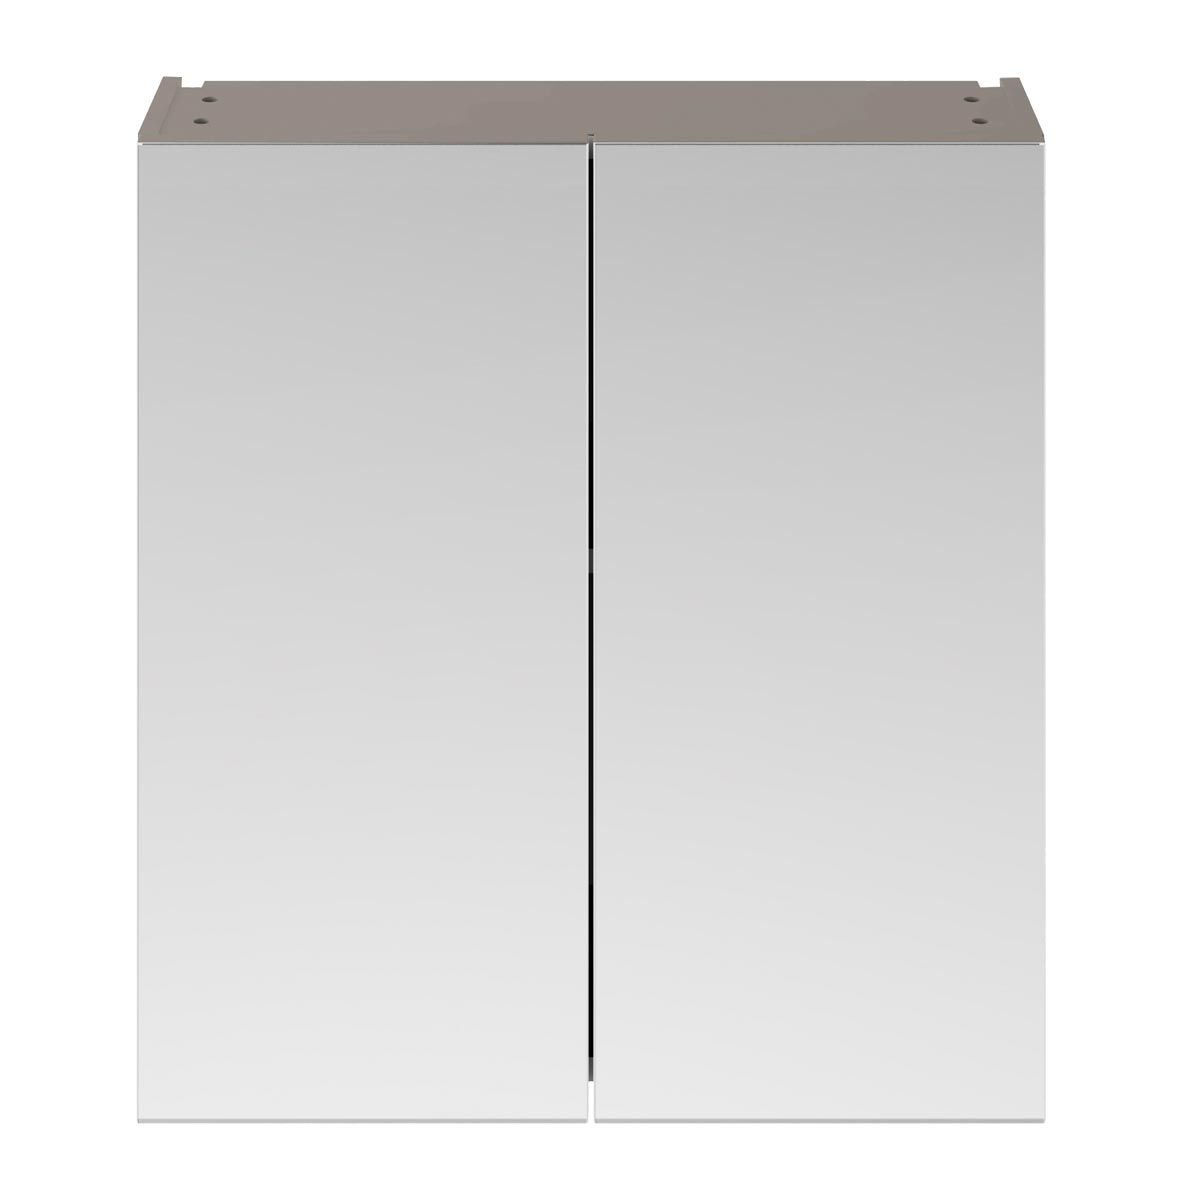 Nuie Athena Stone Grey Double Mirrored Bathroom Cabinet 800mm